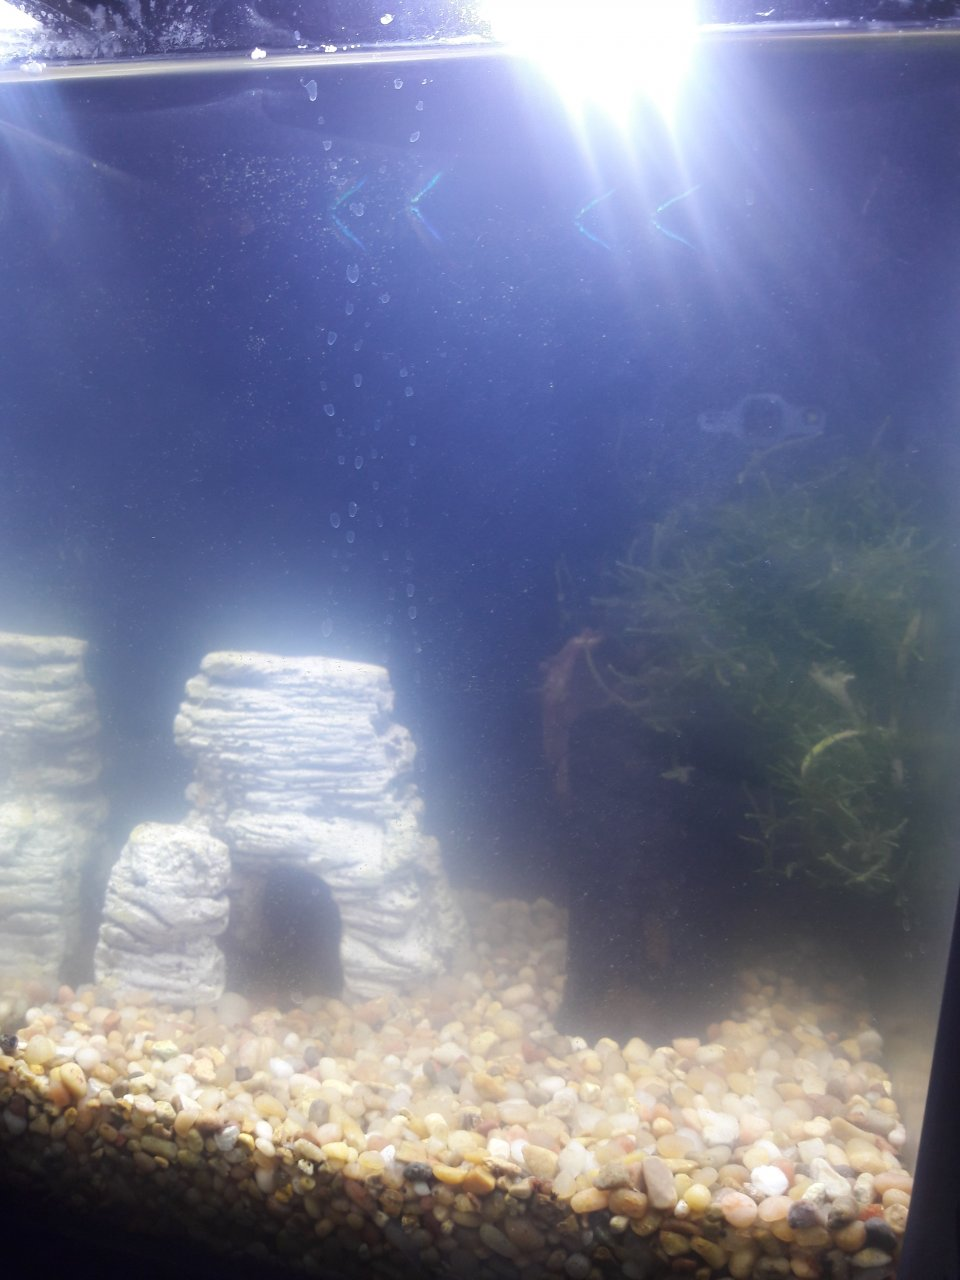 Freshwater aquarium fish gasping for air -  The Water Was Very Cloudy And The Fish Were At The Top Gasping For Air I Only Have Done One Big Water Change 50 And Gravel Clean About 2 Weeks Ago